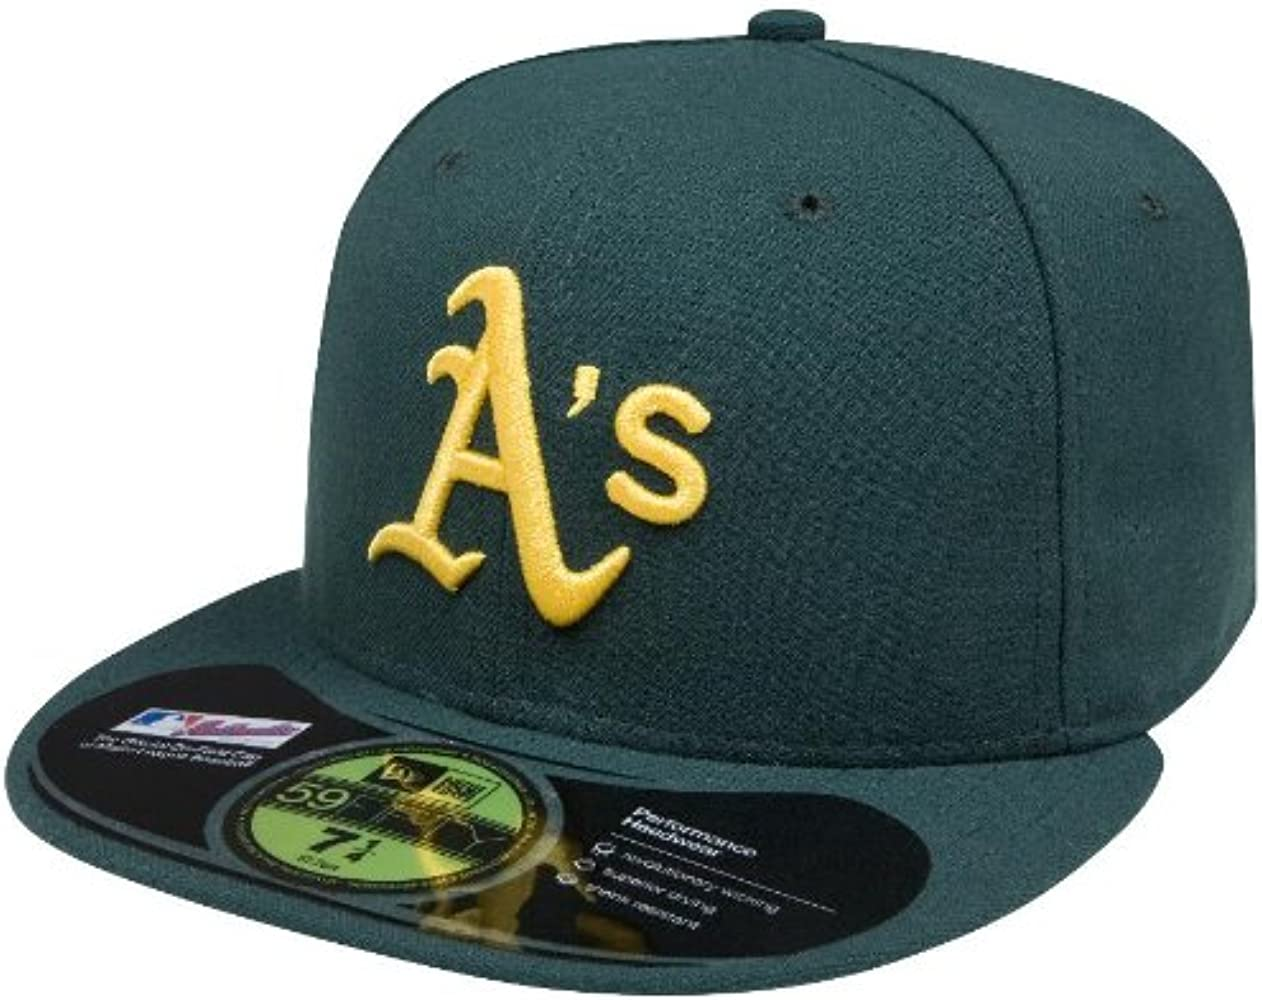 New Era Oakland Athletics ROAD 59Fifty Fitted Hat Green MLB Cap 7 3//8